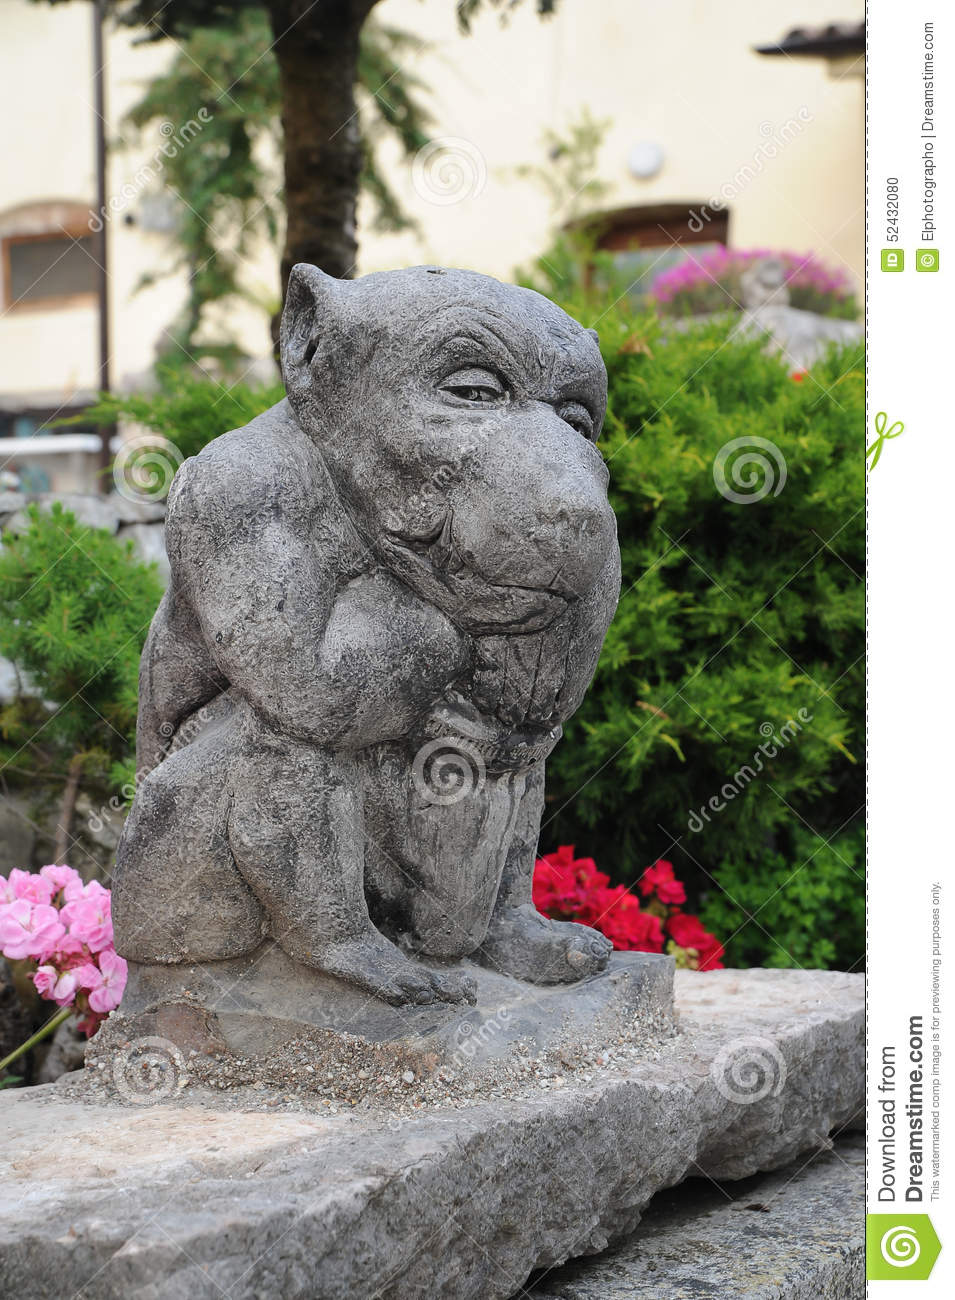 Gargoyle Garden Statue Stock Photo Image 52432080